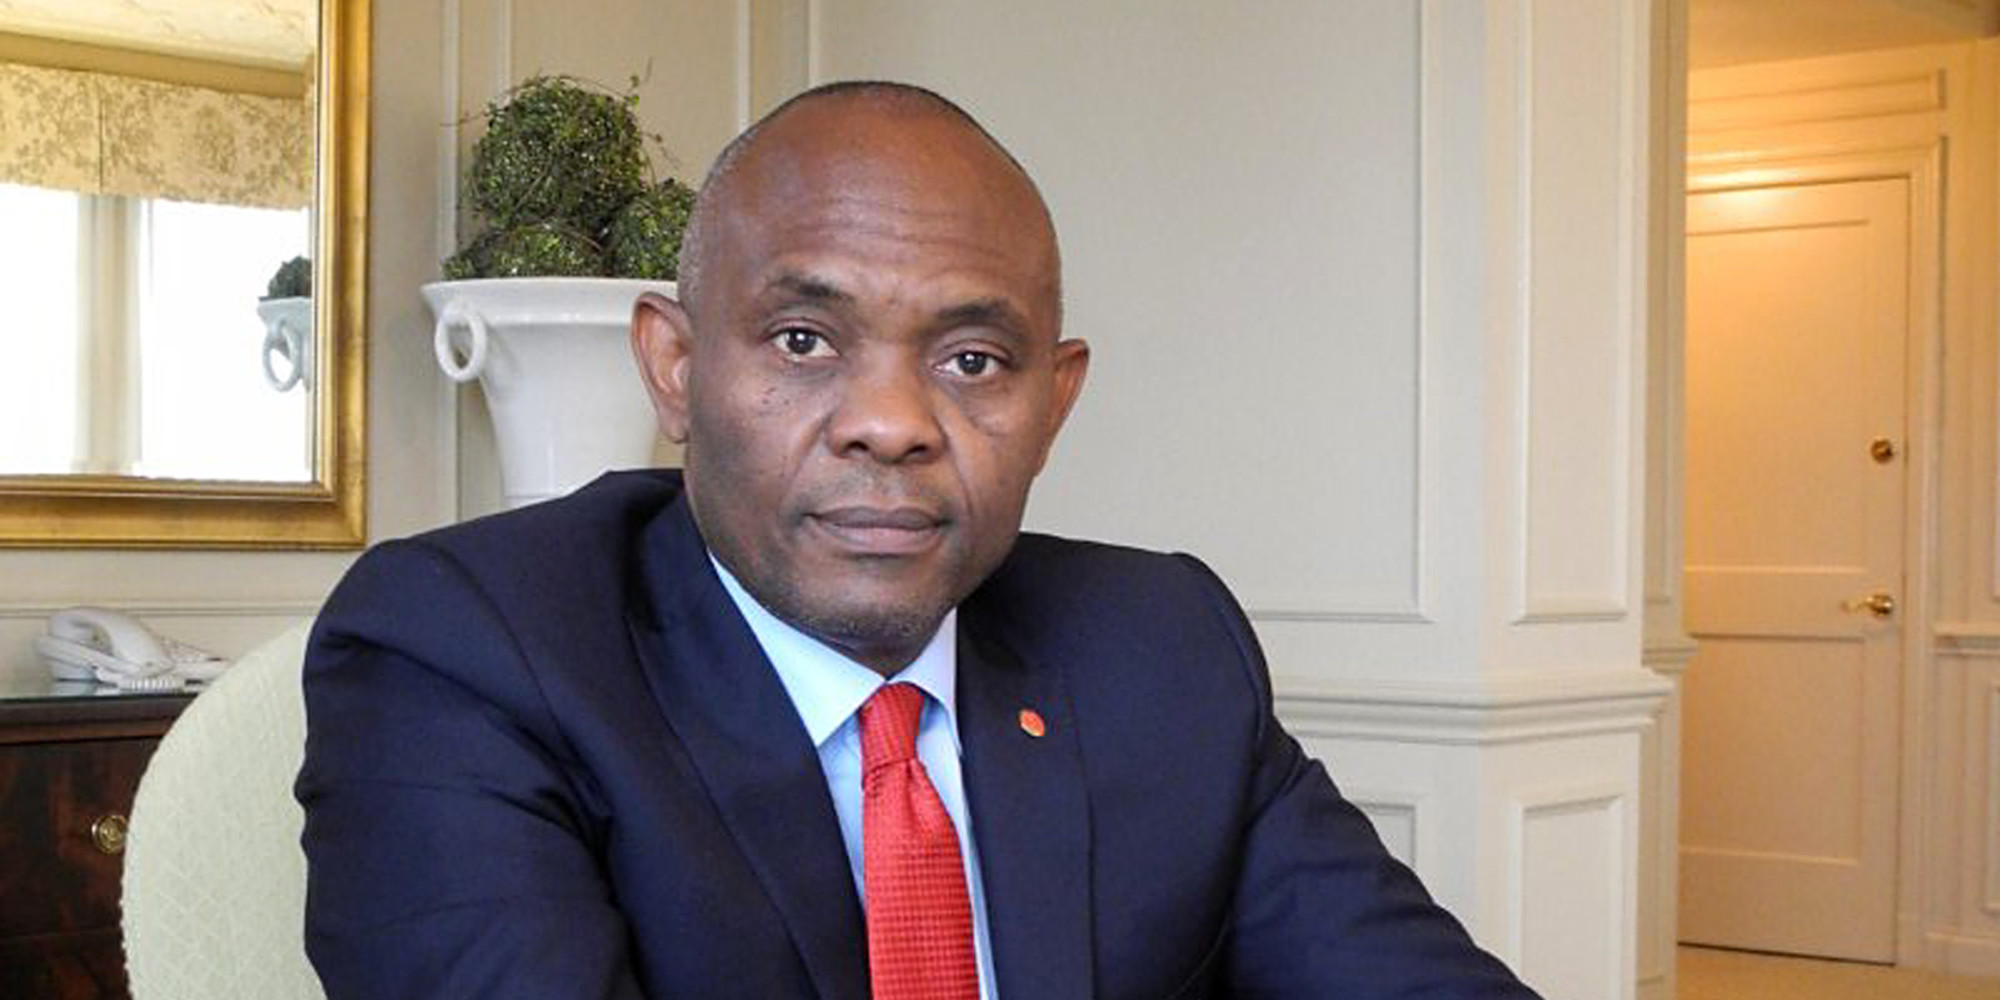 Tony Elumelu Net Worth and Biography